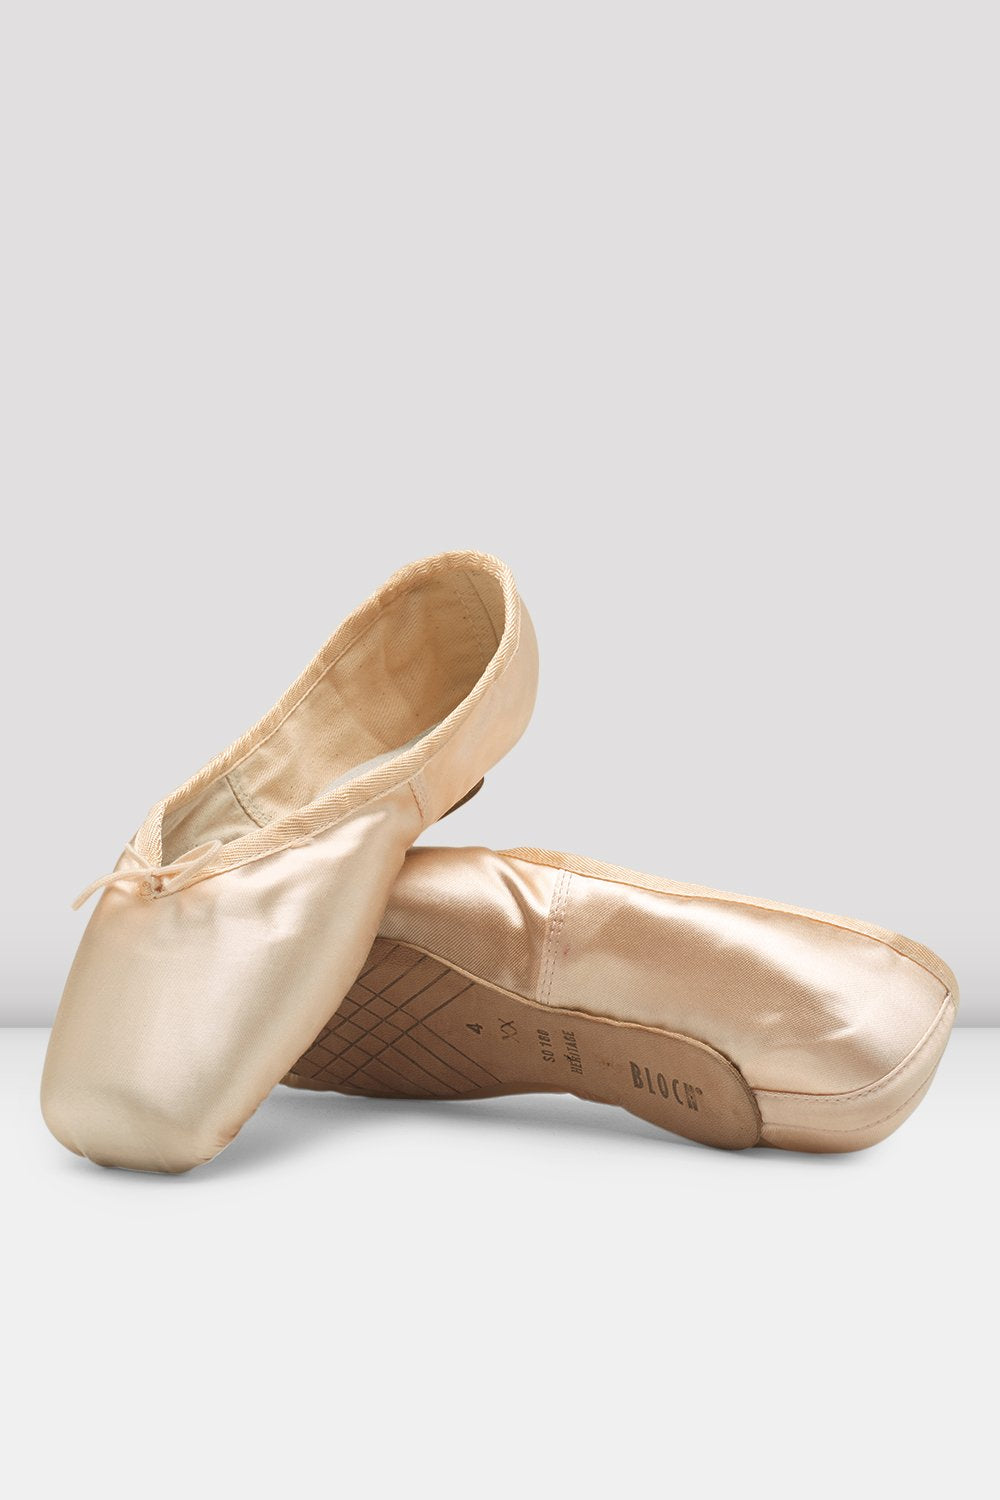 Pink Satin Bloch Heritage Pointe Shoes flatlay pair of shoes